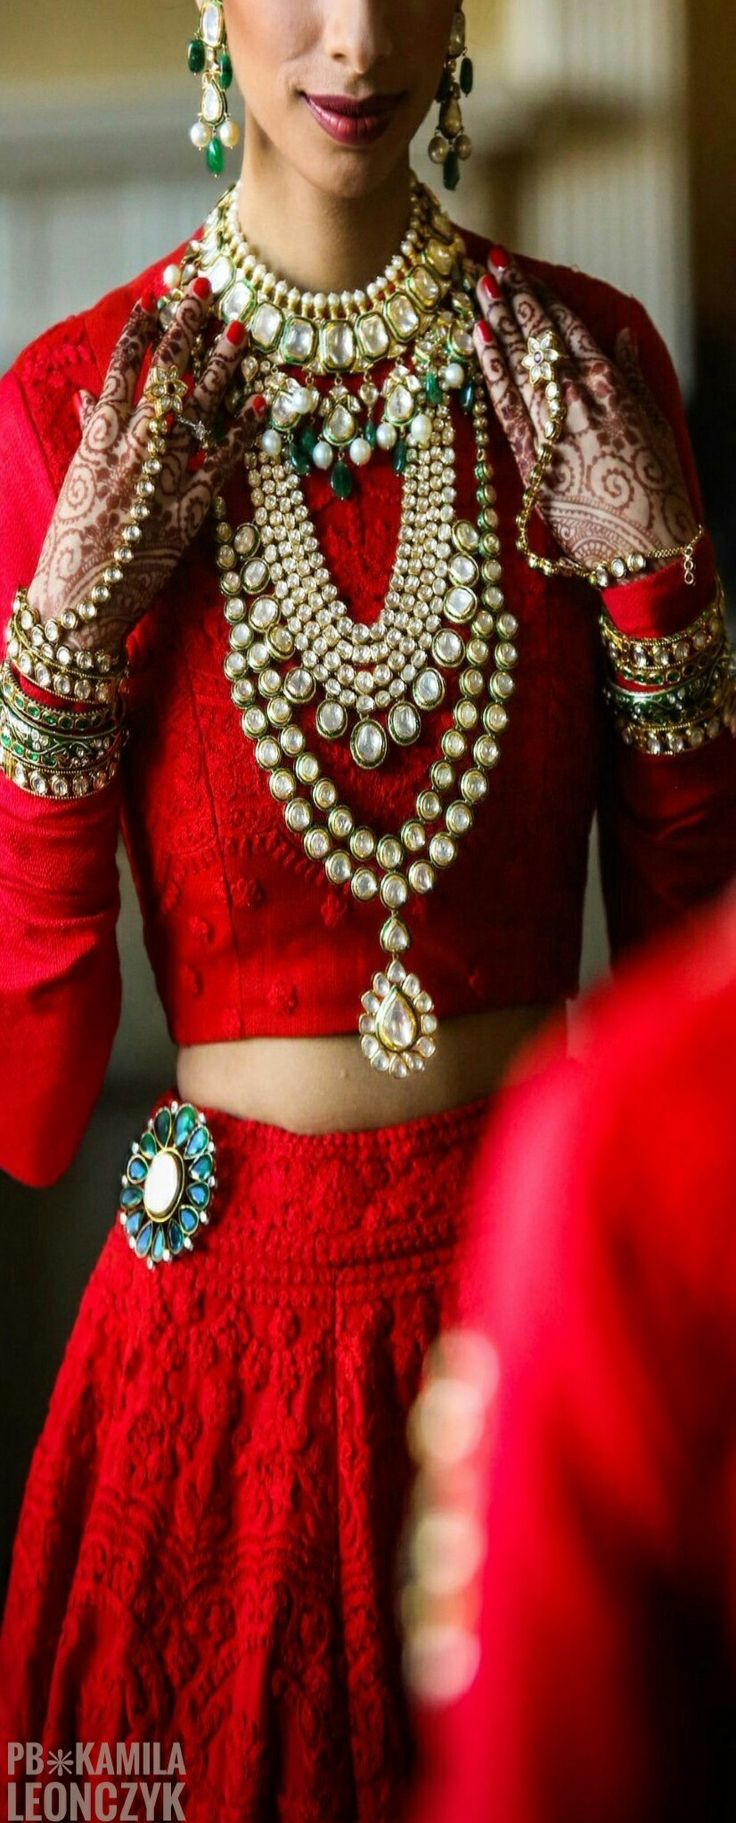 Traditional Indian Wedding - The Bride's Wedding Day Jewelry